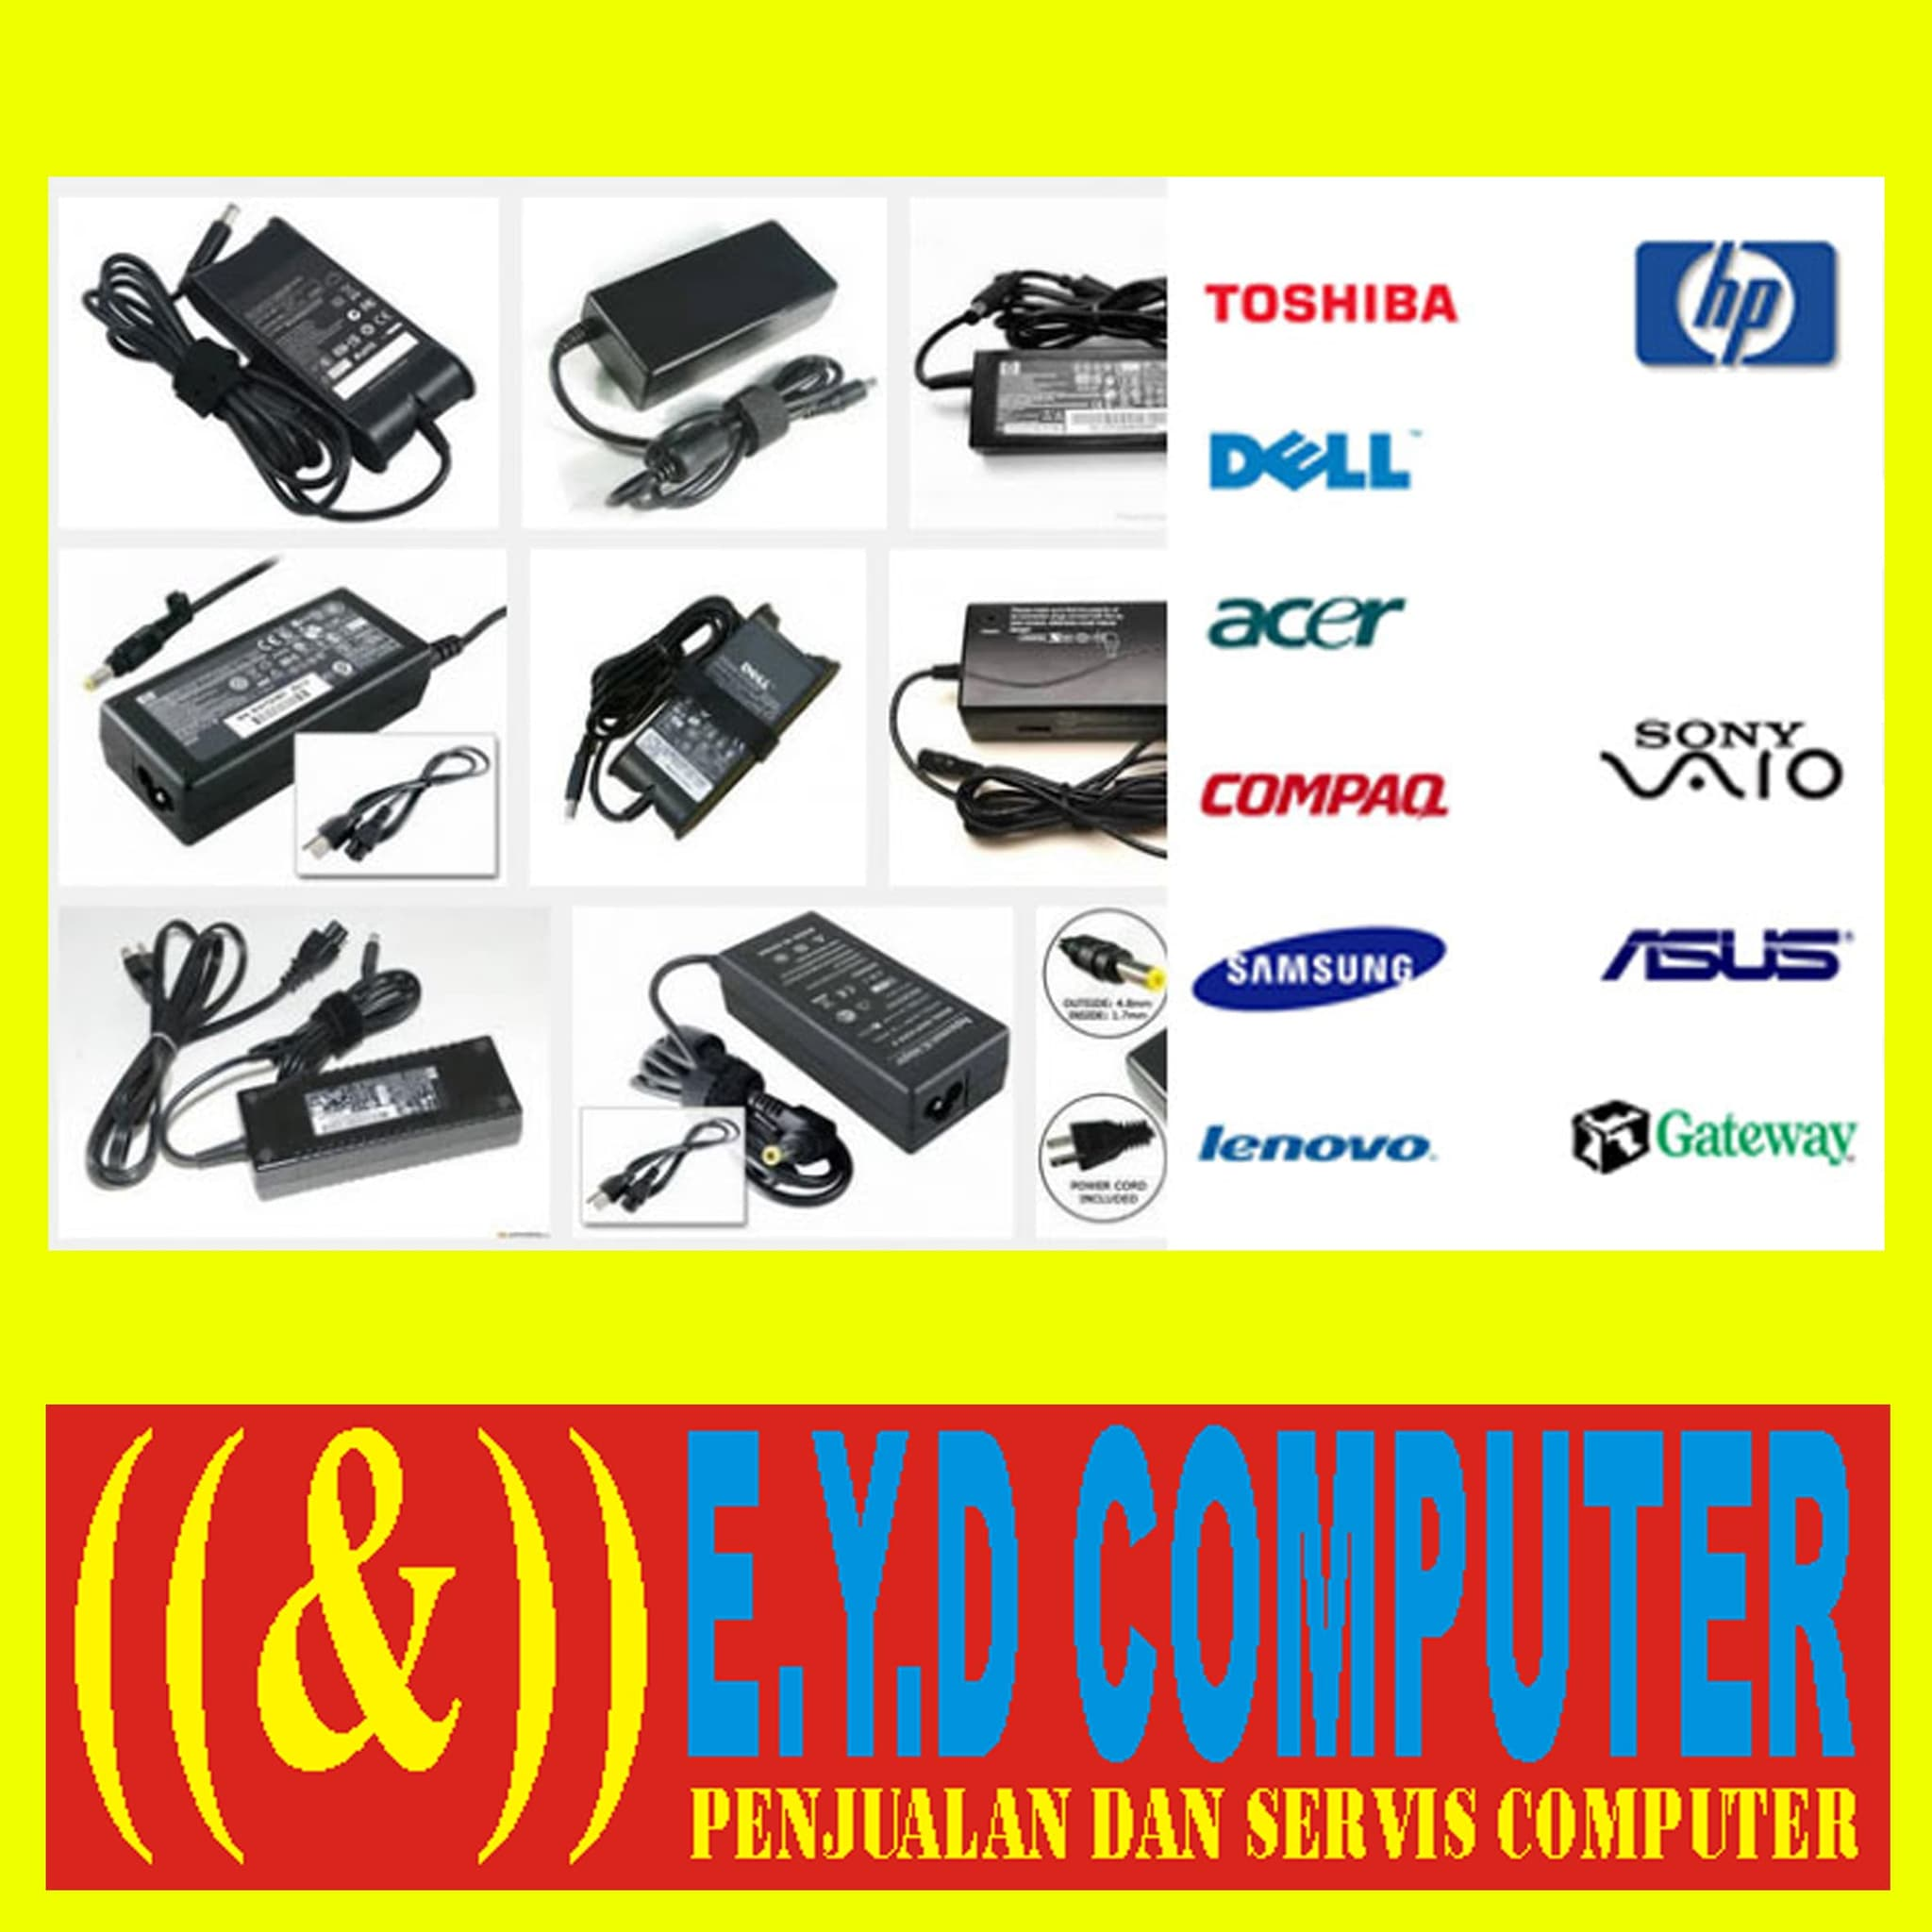 Jual Adaptor Laptop Acer 2920 2930 4732 4736 4738 4750 4741 4739 Charger Aspire 4752 4740 4710